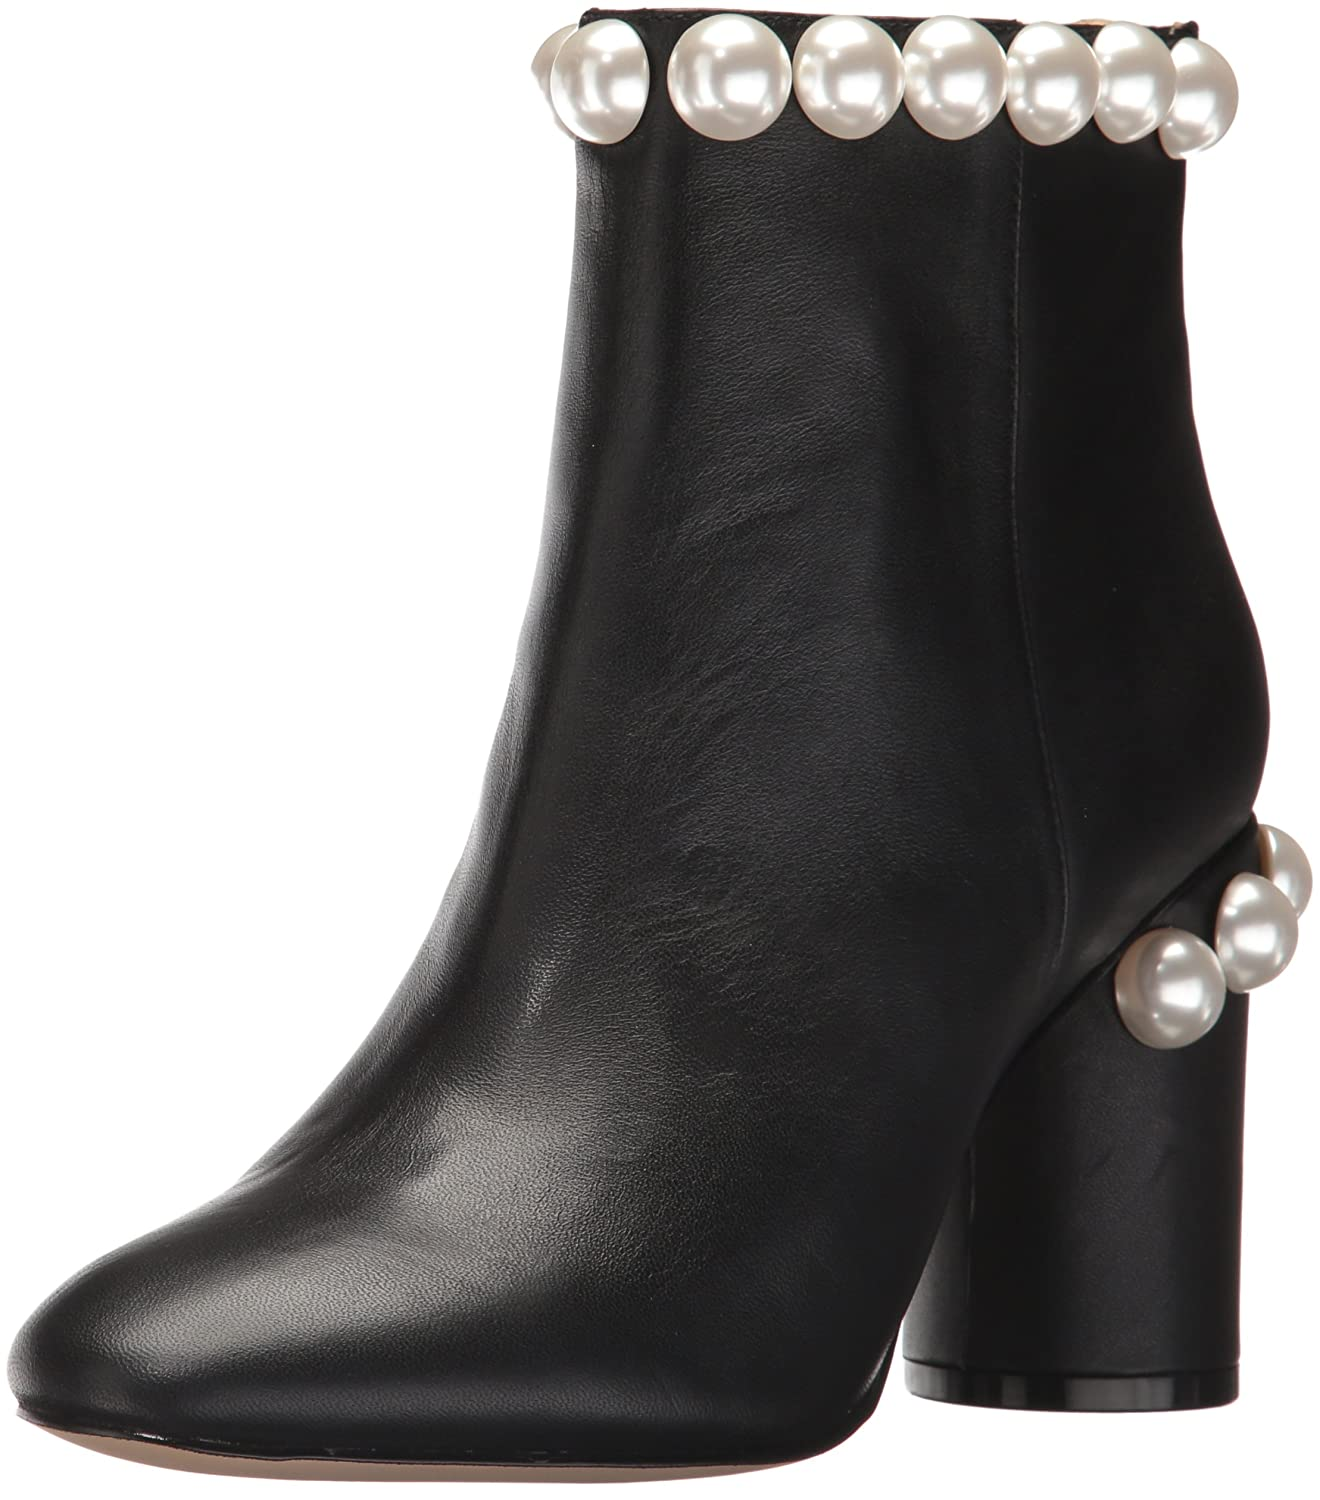 Katy Perry Women's The Opearl Ankle Boot B06XDGX7KR 6.5 M US Black